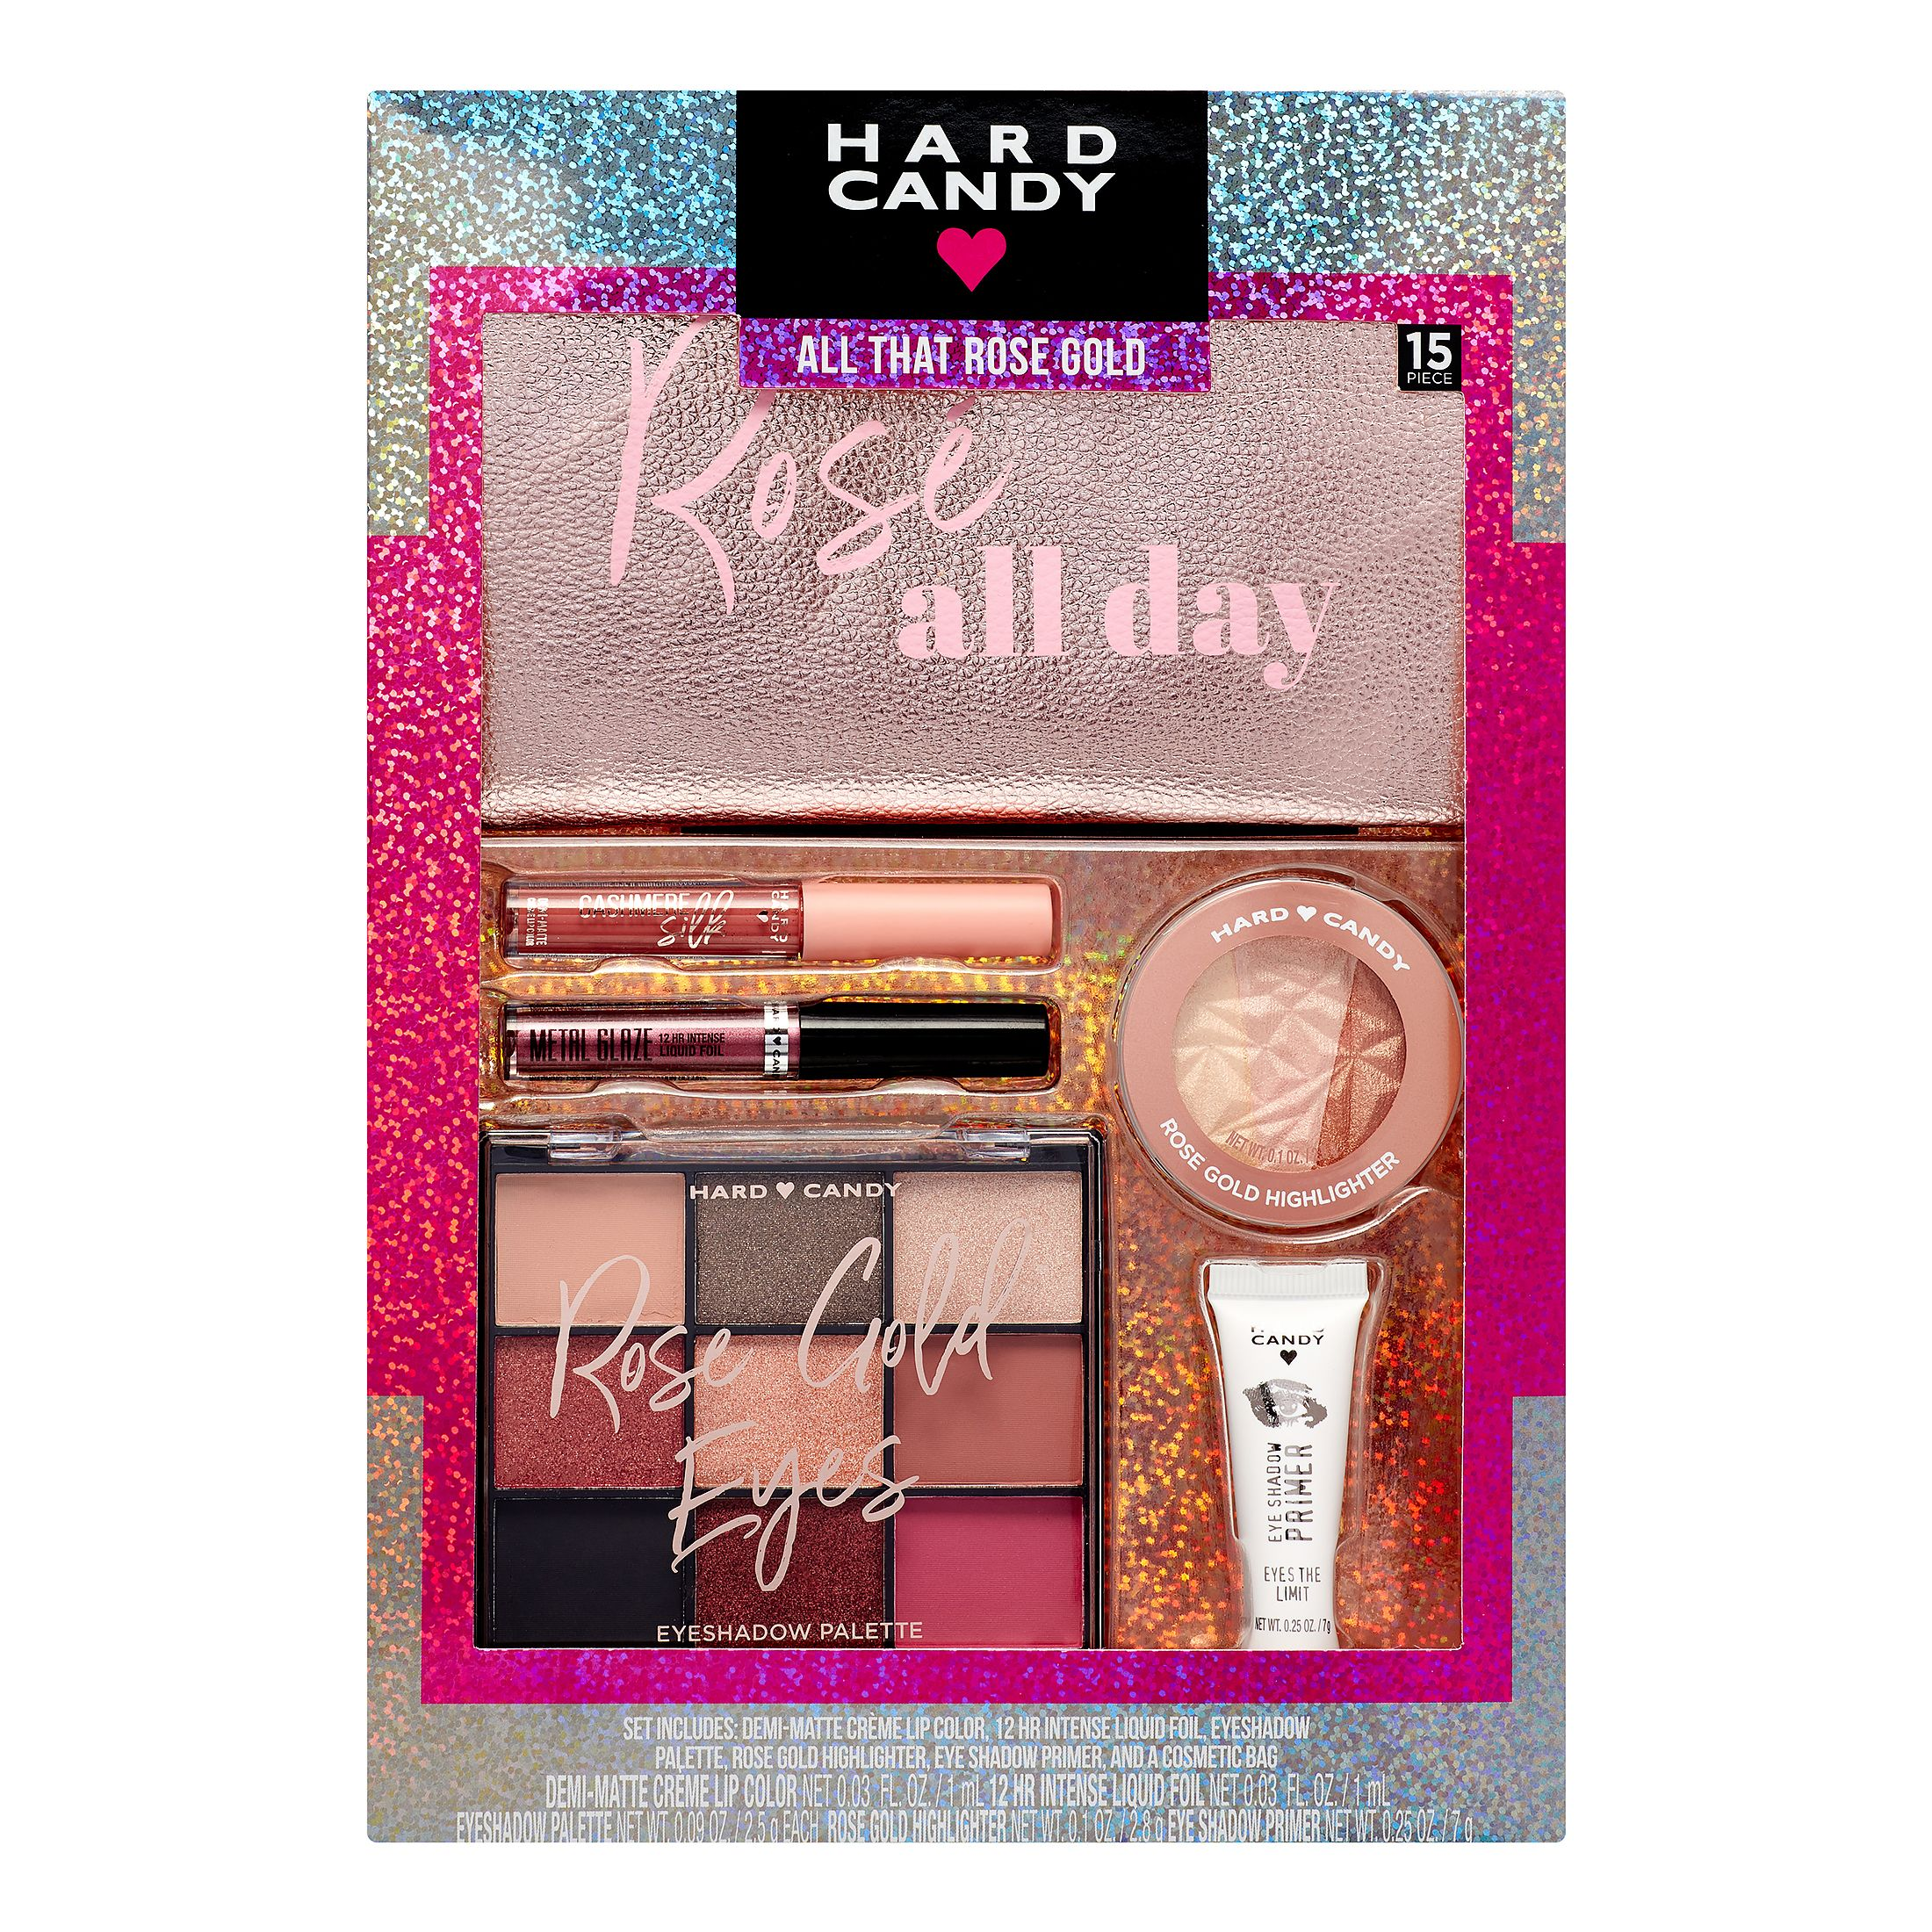 Hard Candy Holiday Makeup Gift Set, All That Rose Gold ($13 Value)